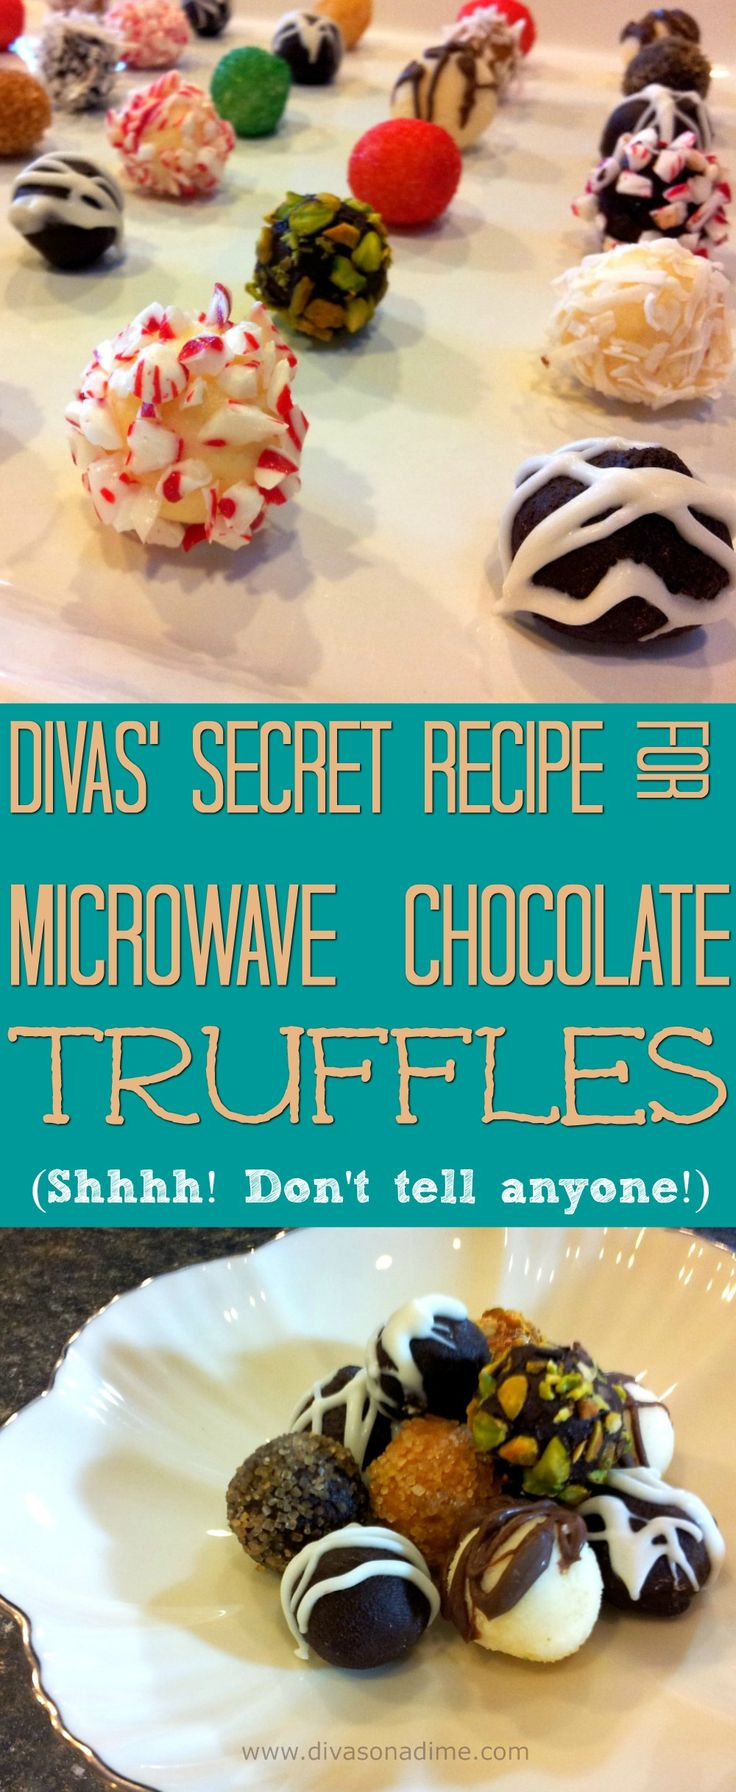 Want to impress someone special? These microwave chocolate truffles are unbelievably easy and so delicious. Godiva just turned into Go Diva!